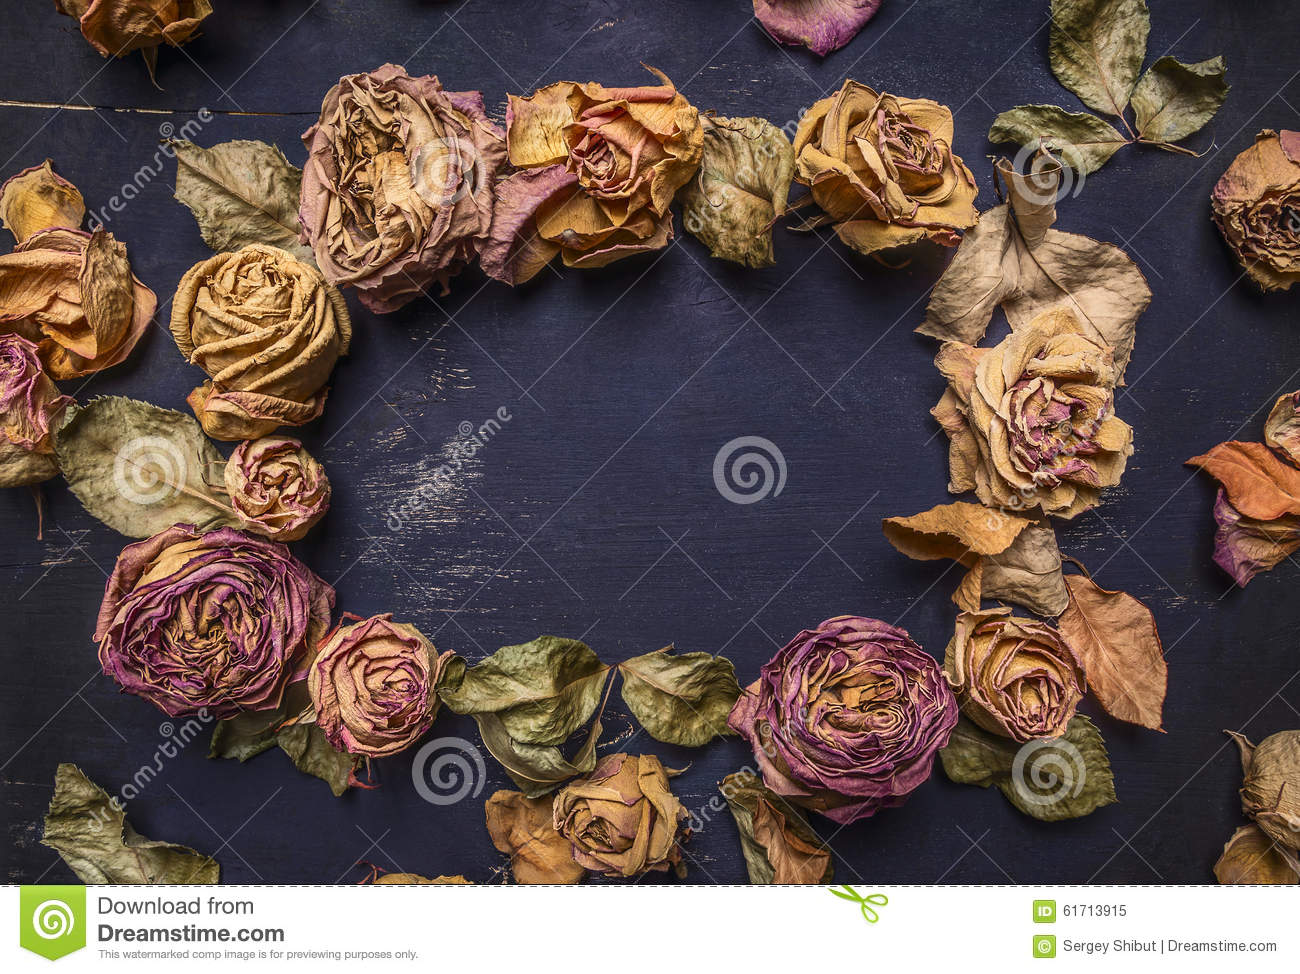 Dried roses with petals, lined frame with space for text wooden rustic background top view close up